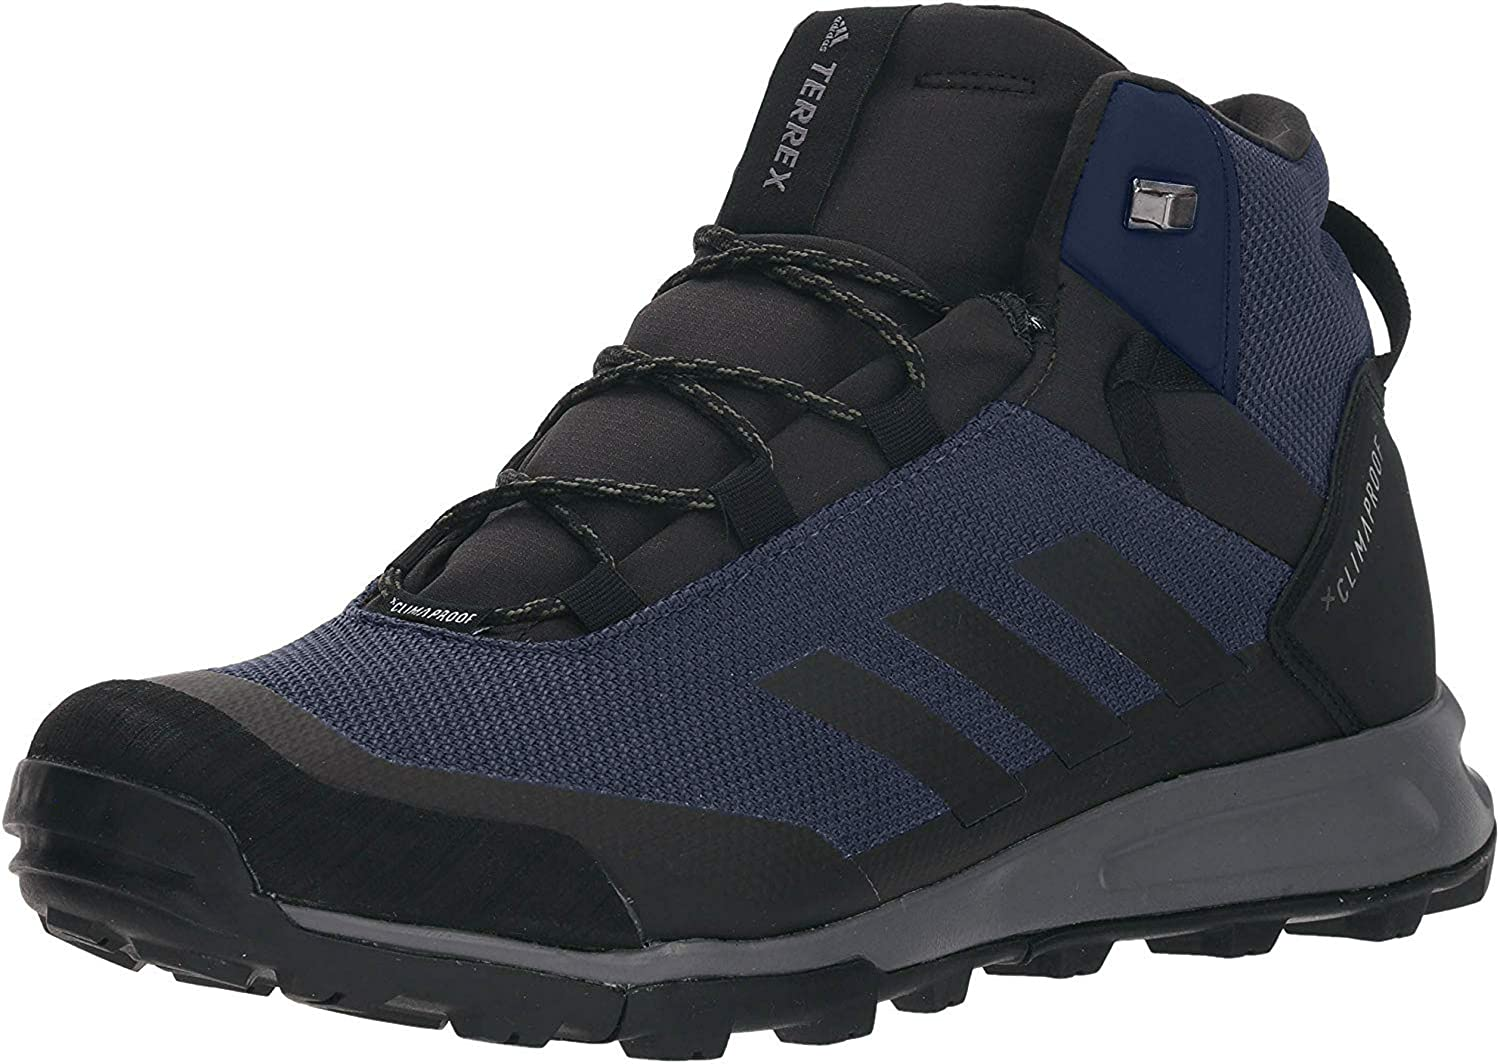 Choice adidas Outdoor Men's Outlet SALE TERREX TIVID MID COL BLACK GR Boot CP NAVY